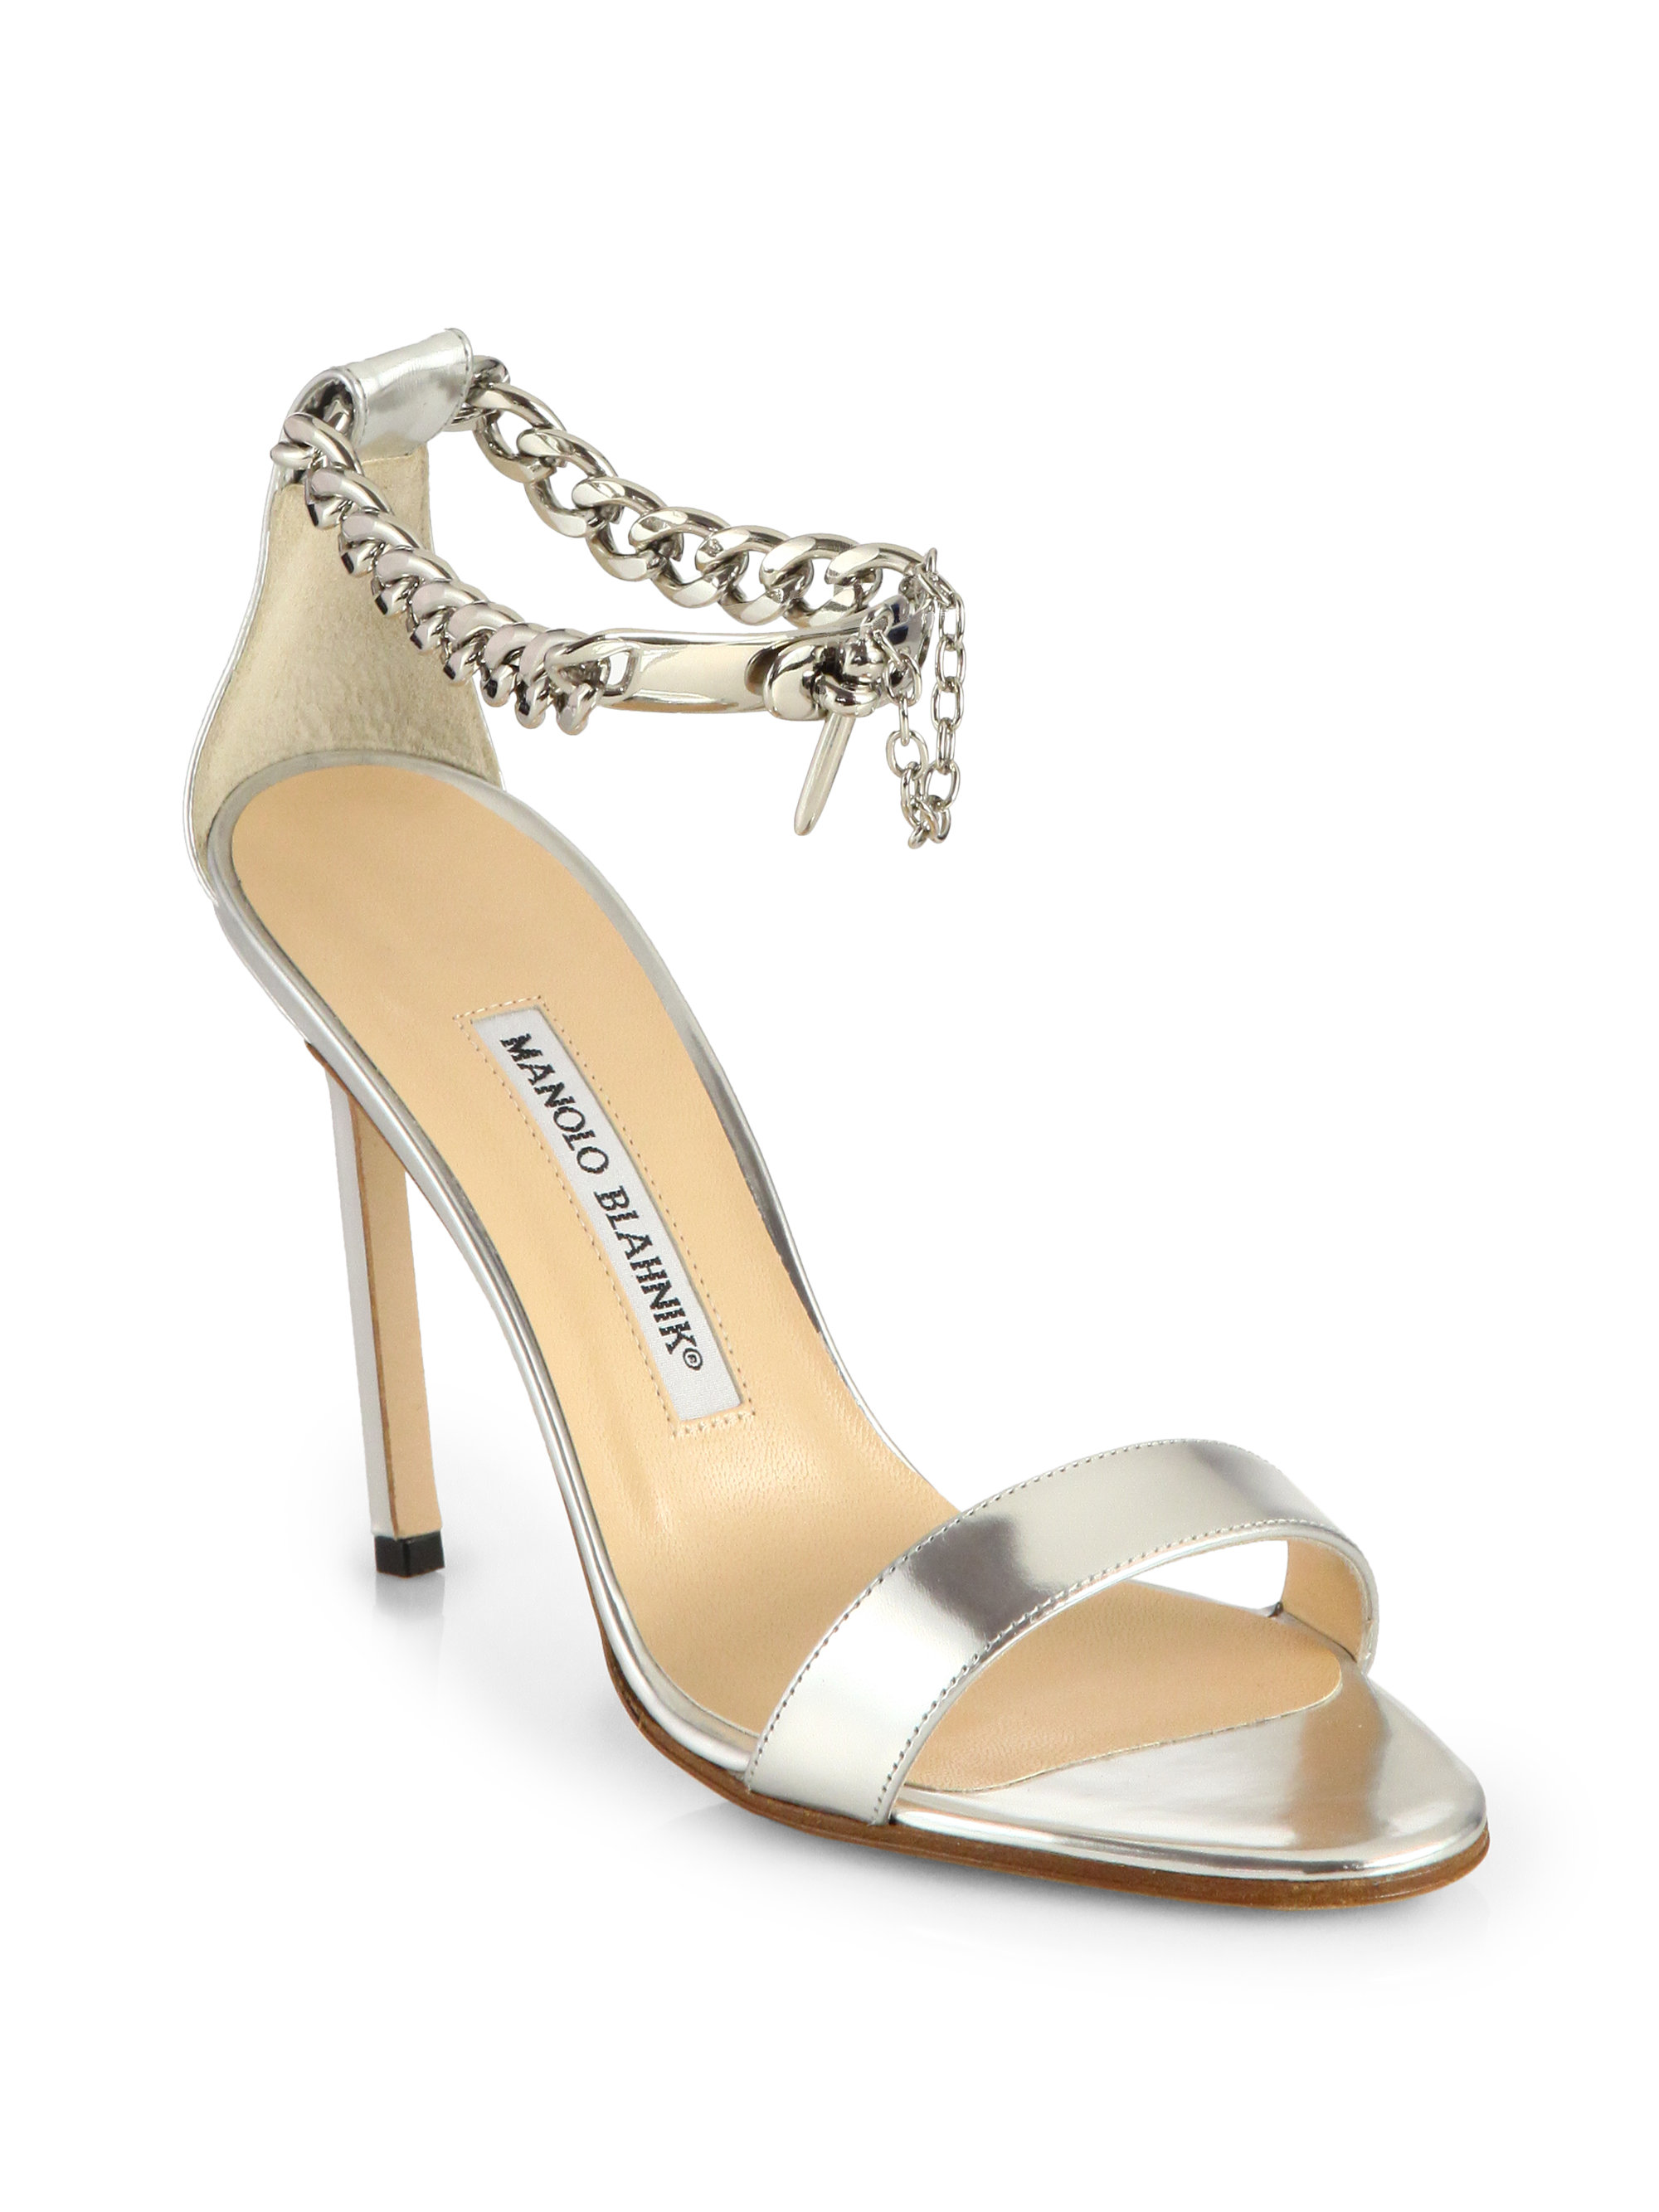 Manolo blahnik chaos metallic leather ankle chain sandals for Who is manolo blahnik